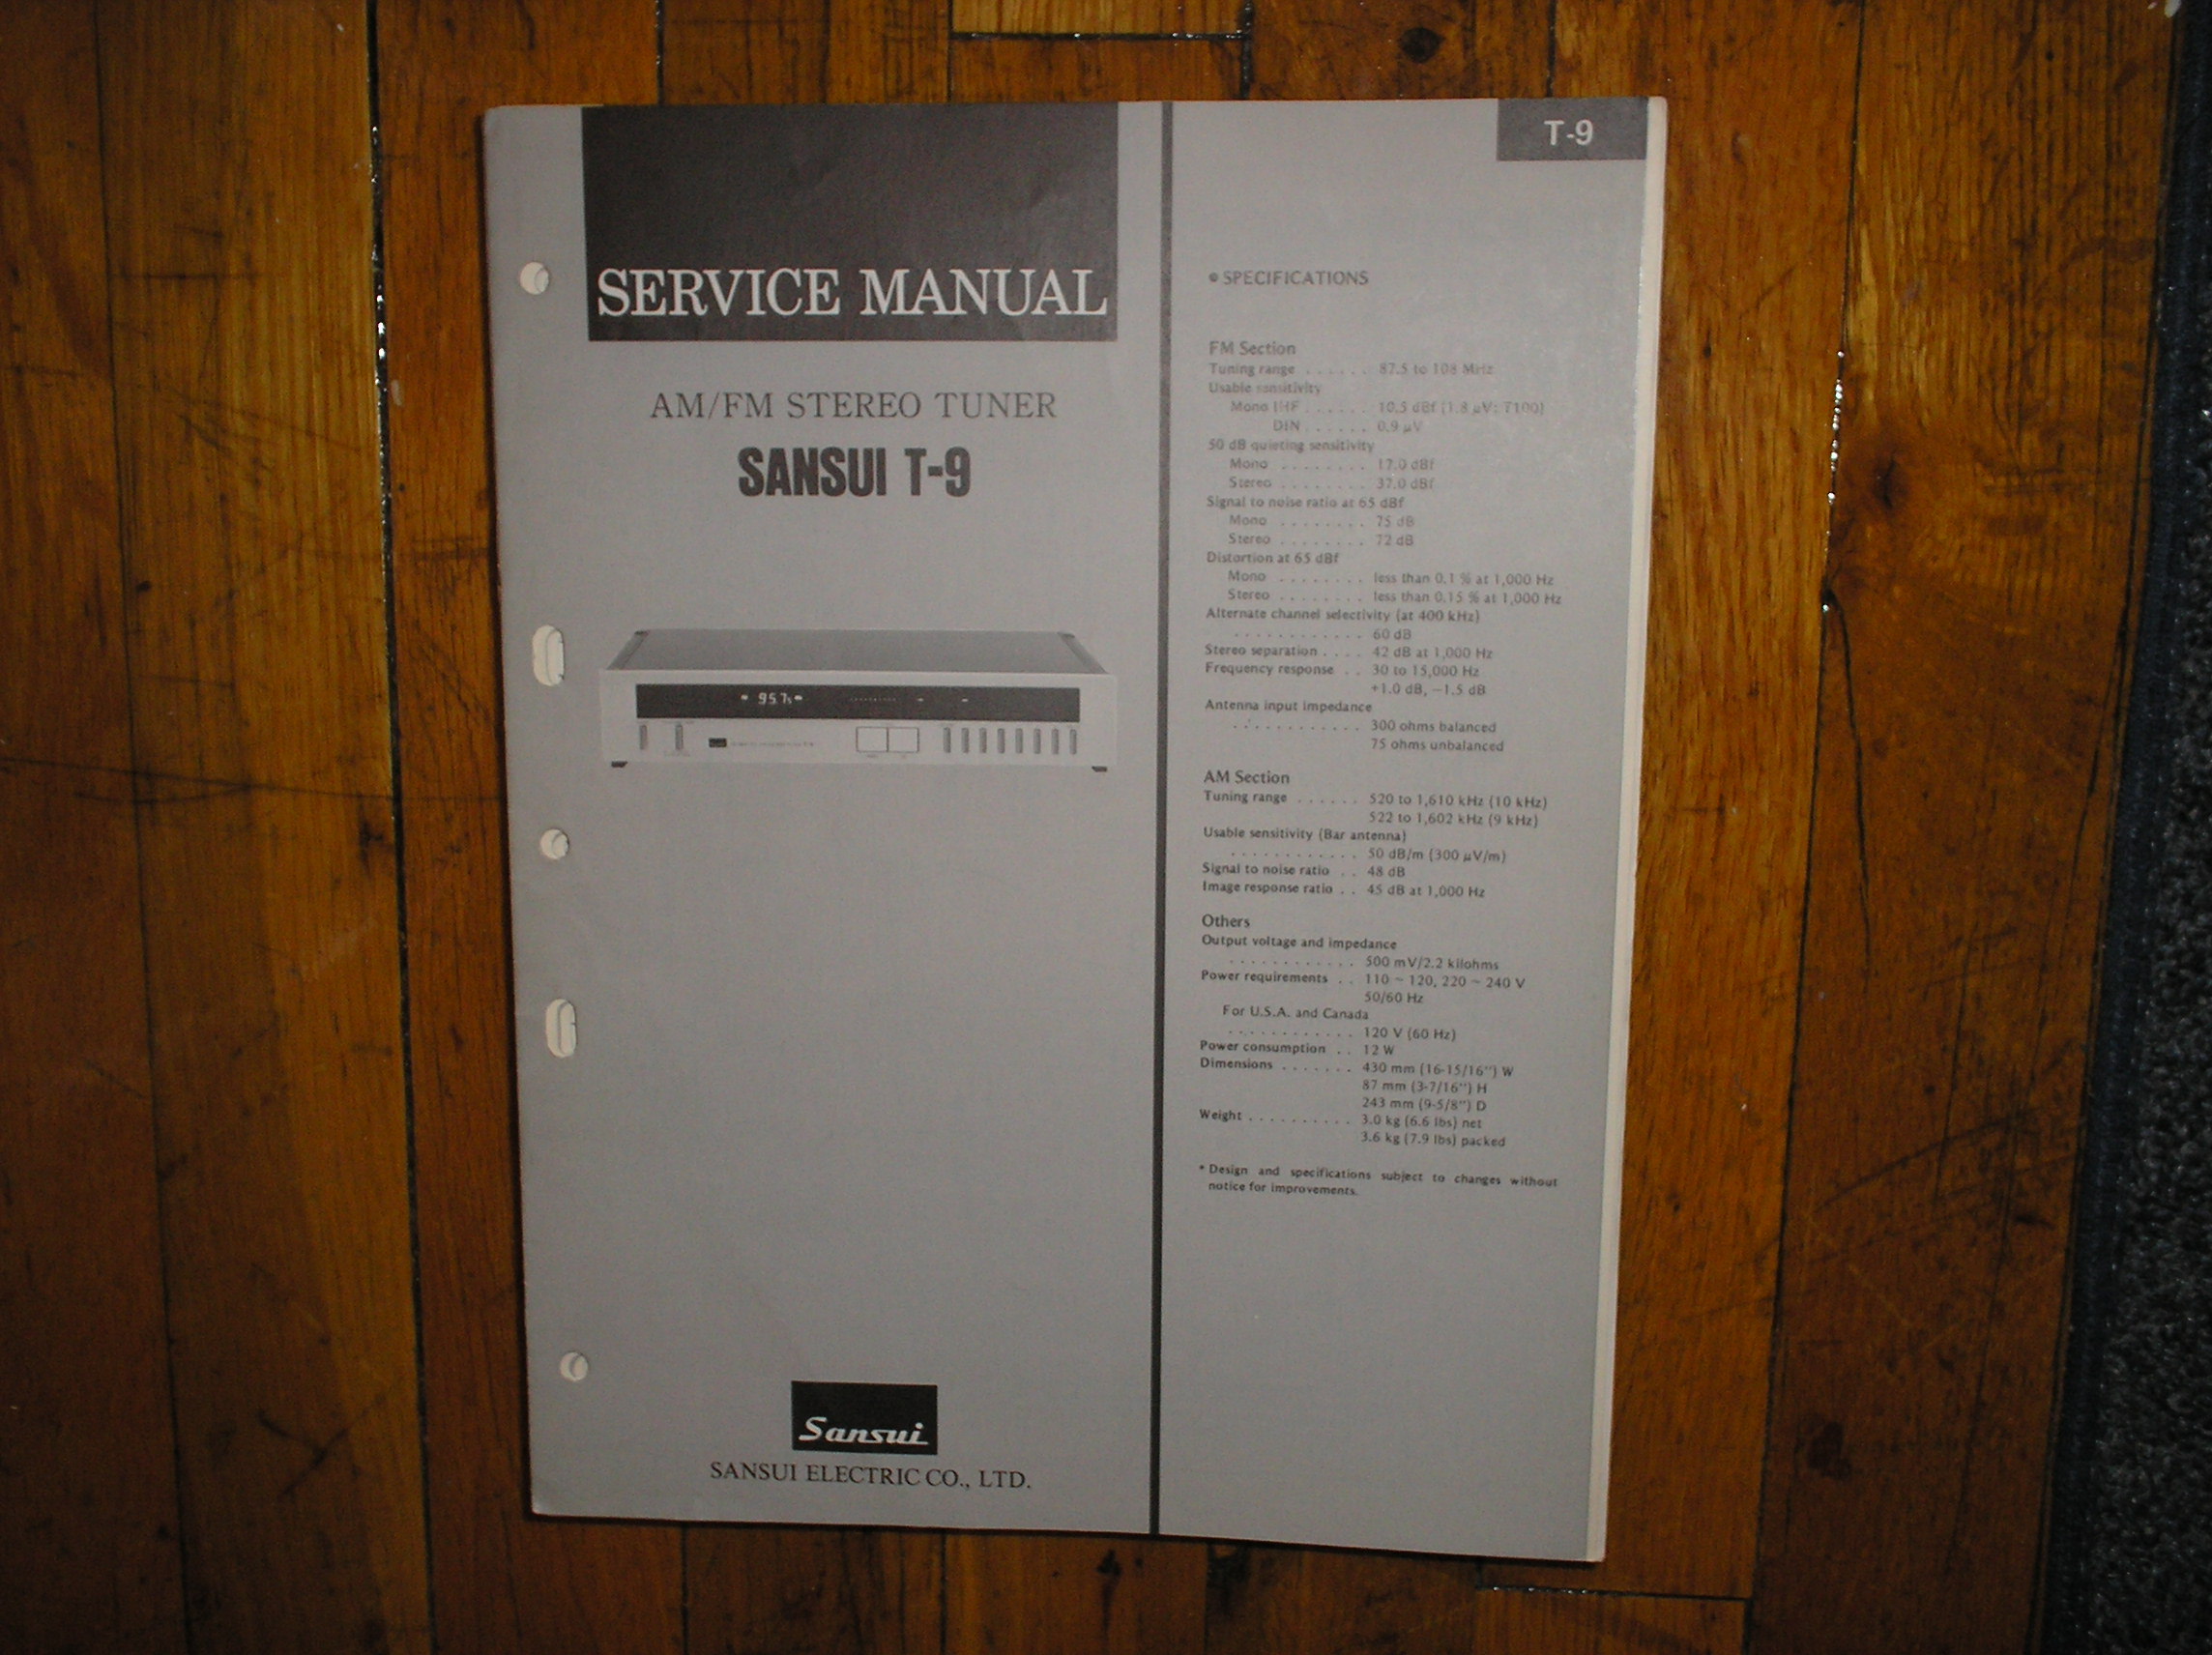 T-9 Tuner Service Manual